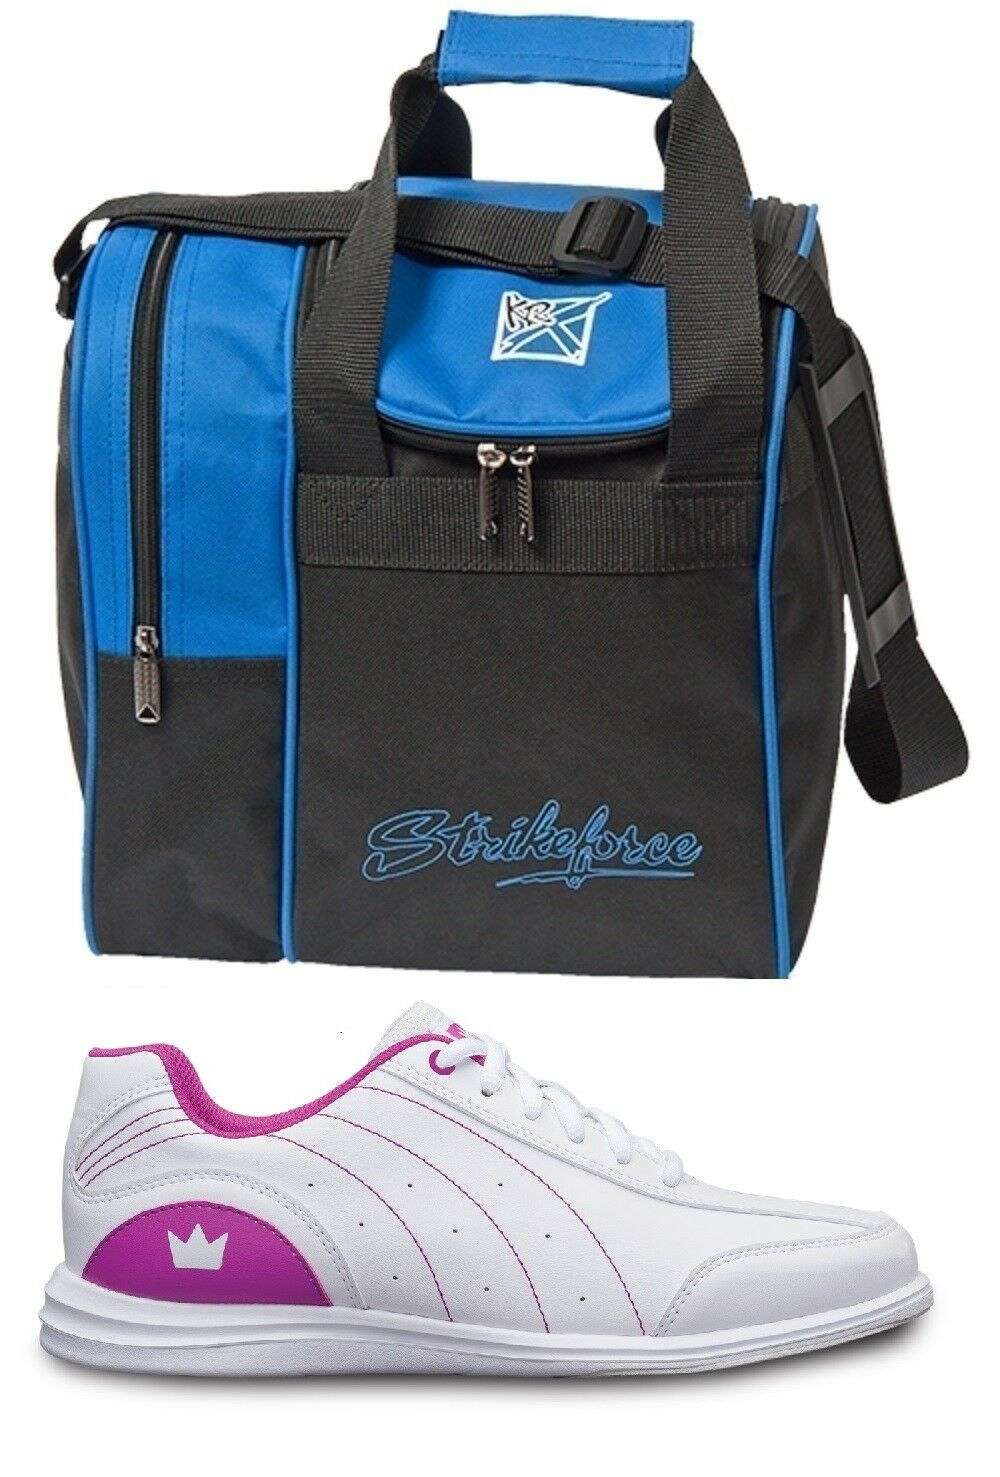 Girls MYSTIC Bowling Ball shoes White Fuchsia Sizes 1-6 & bluee 1 Ball Bag